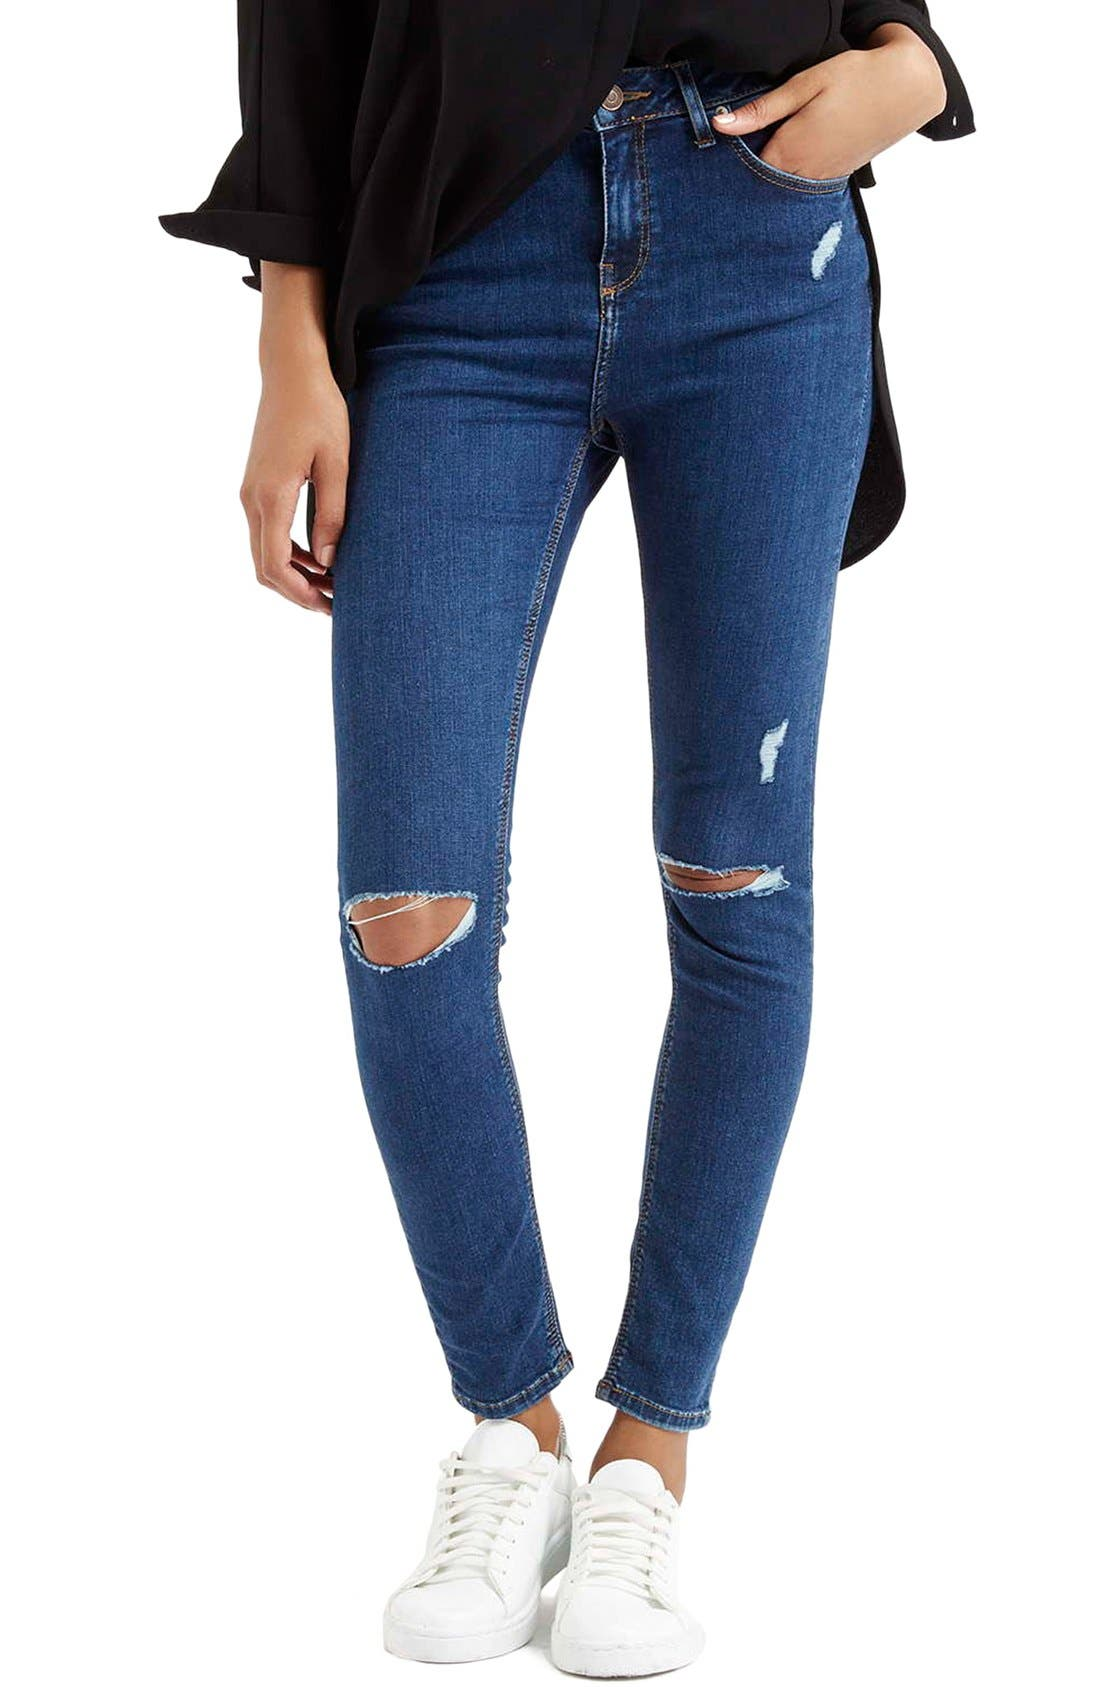 Alternate Image 1 Selected - Topshop Moto 'Jamie' High Rise Ripped Jeans